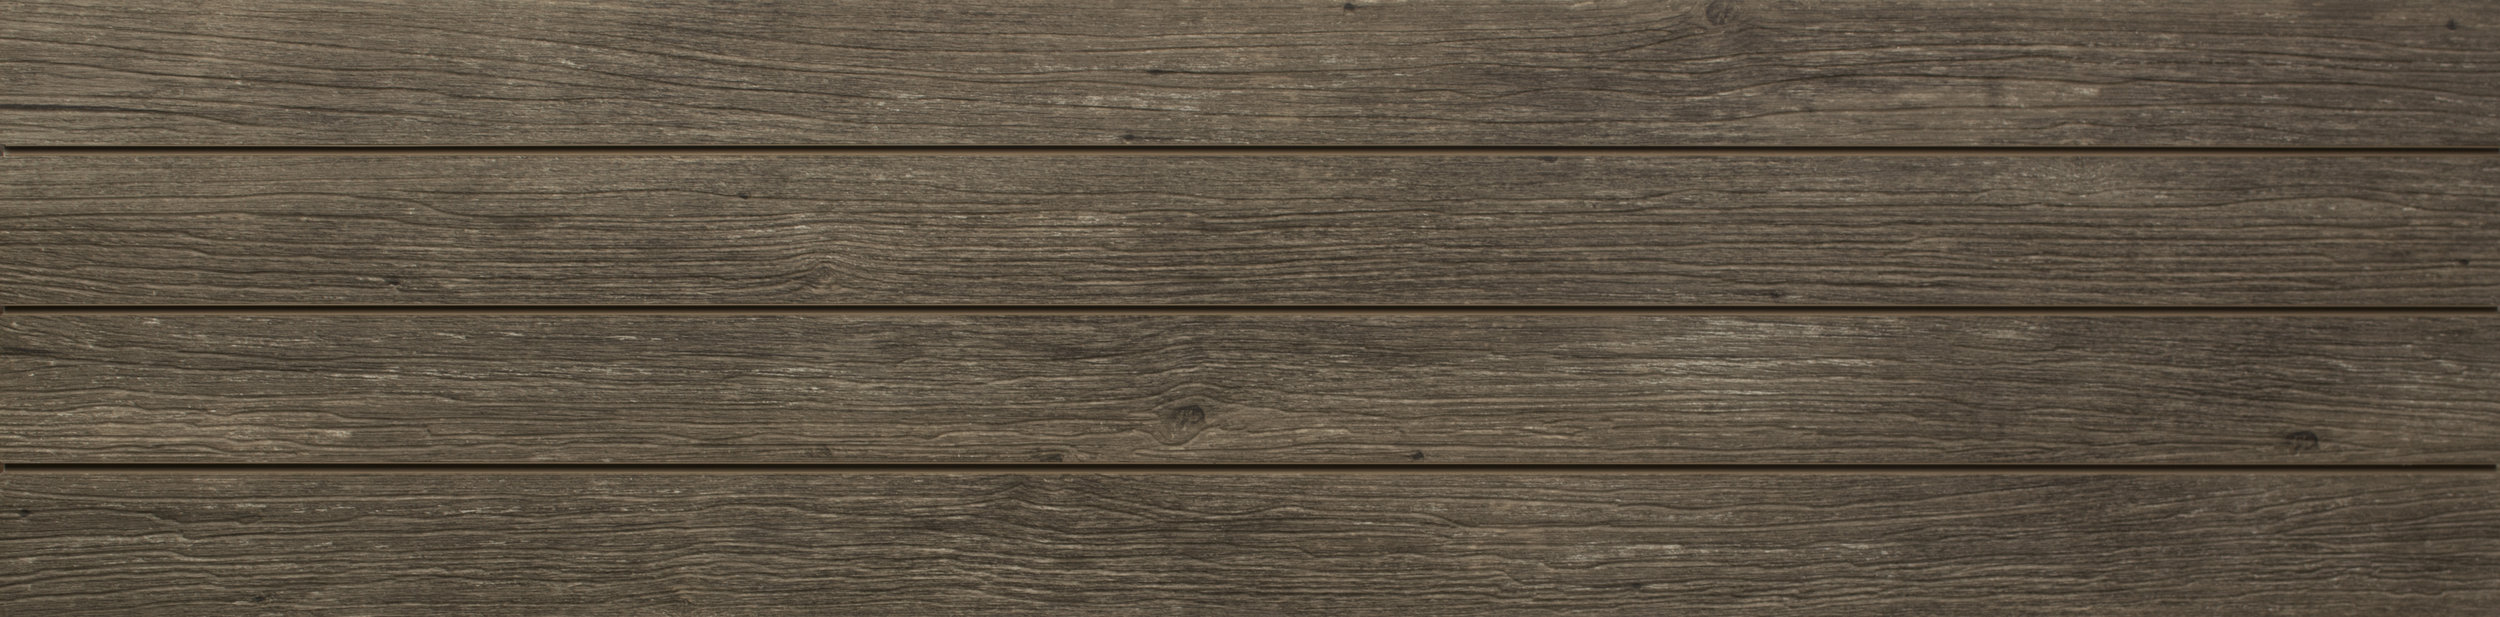 Weathered Wood warm full sheet.jpg